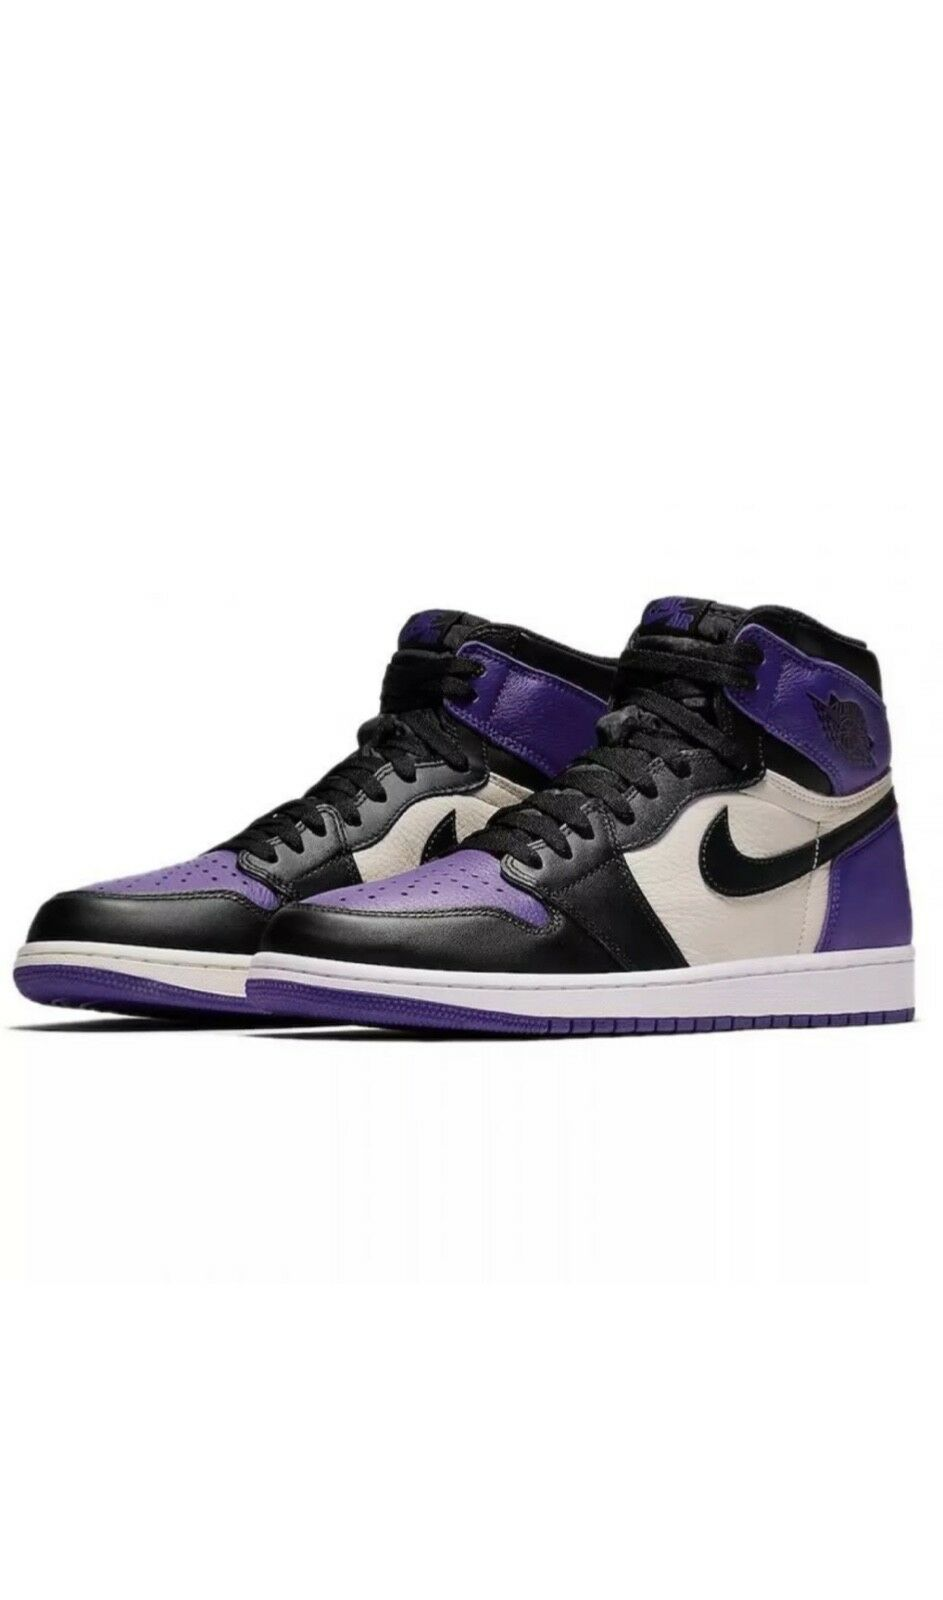 AIR JORDAN 1 RETRO HIGH OG 555088-501  COURT PURPLE  Black Sail Men's Size 10 Us